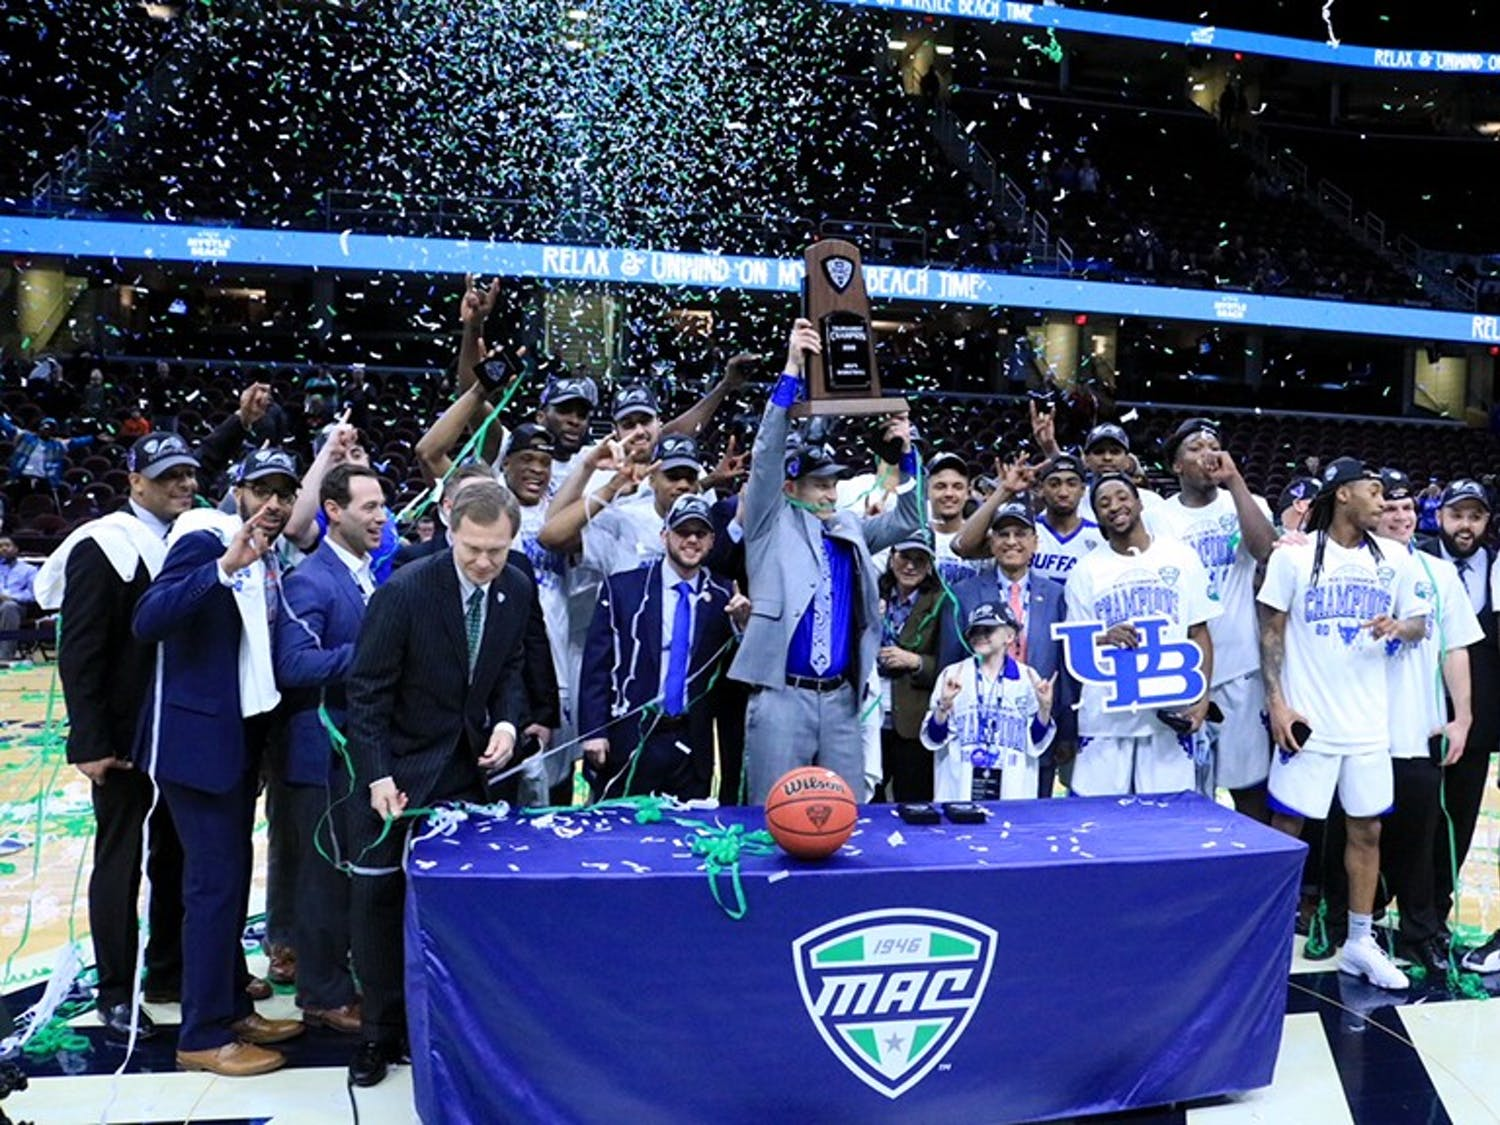 The men's basketball team celebrates their MAC Title victory in Quicken Loans Arena. The MAC Title ranks third on The Spectrum's list of top 10 events in March.